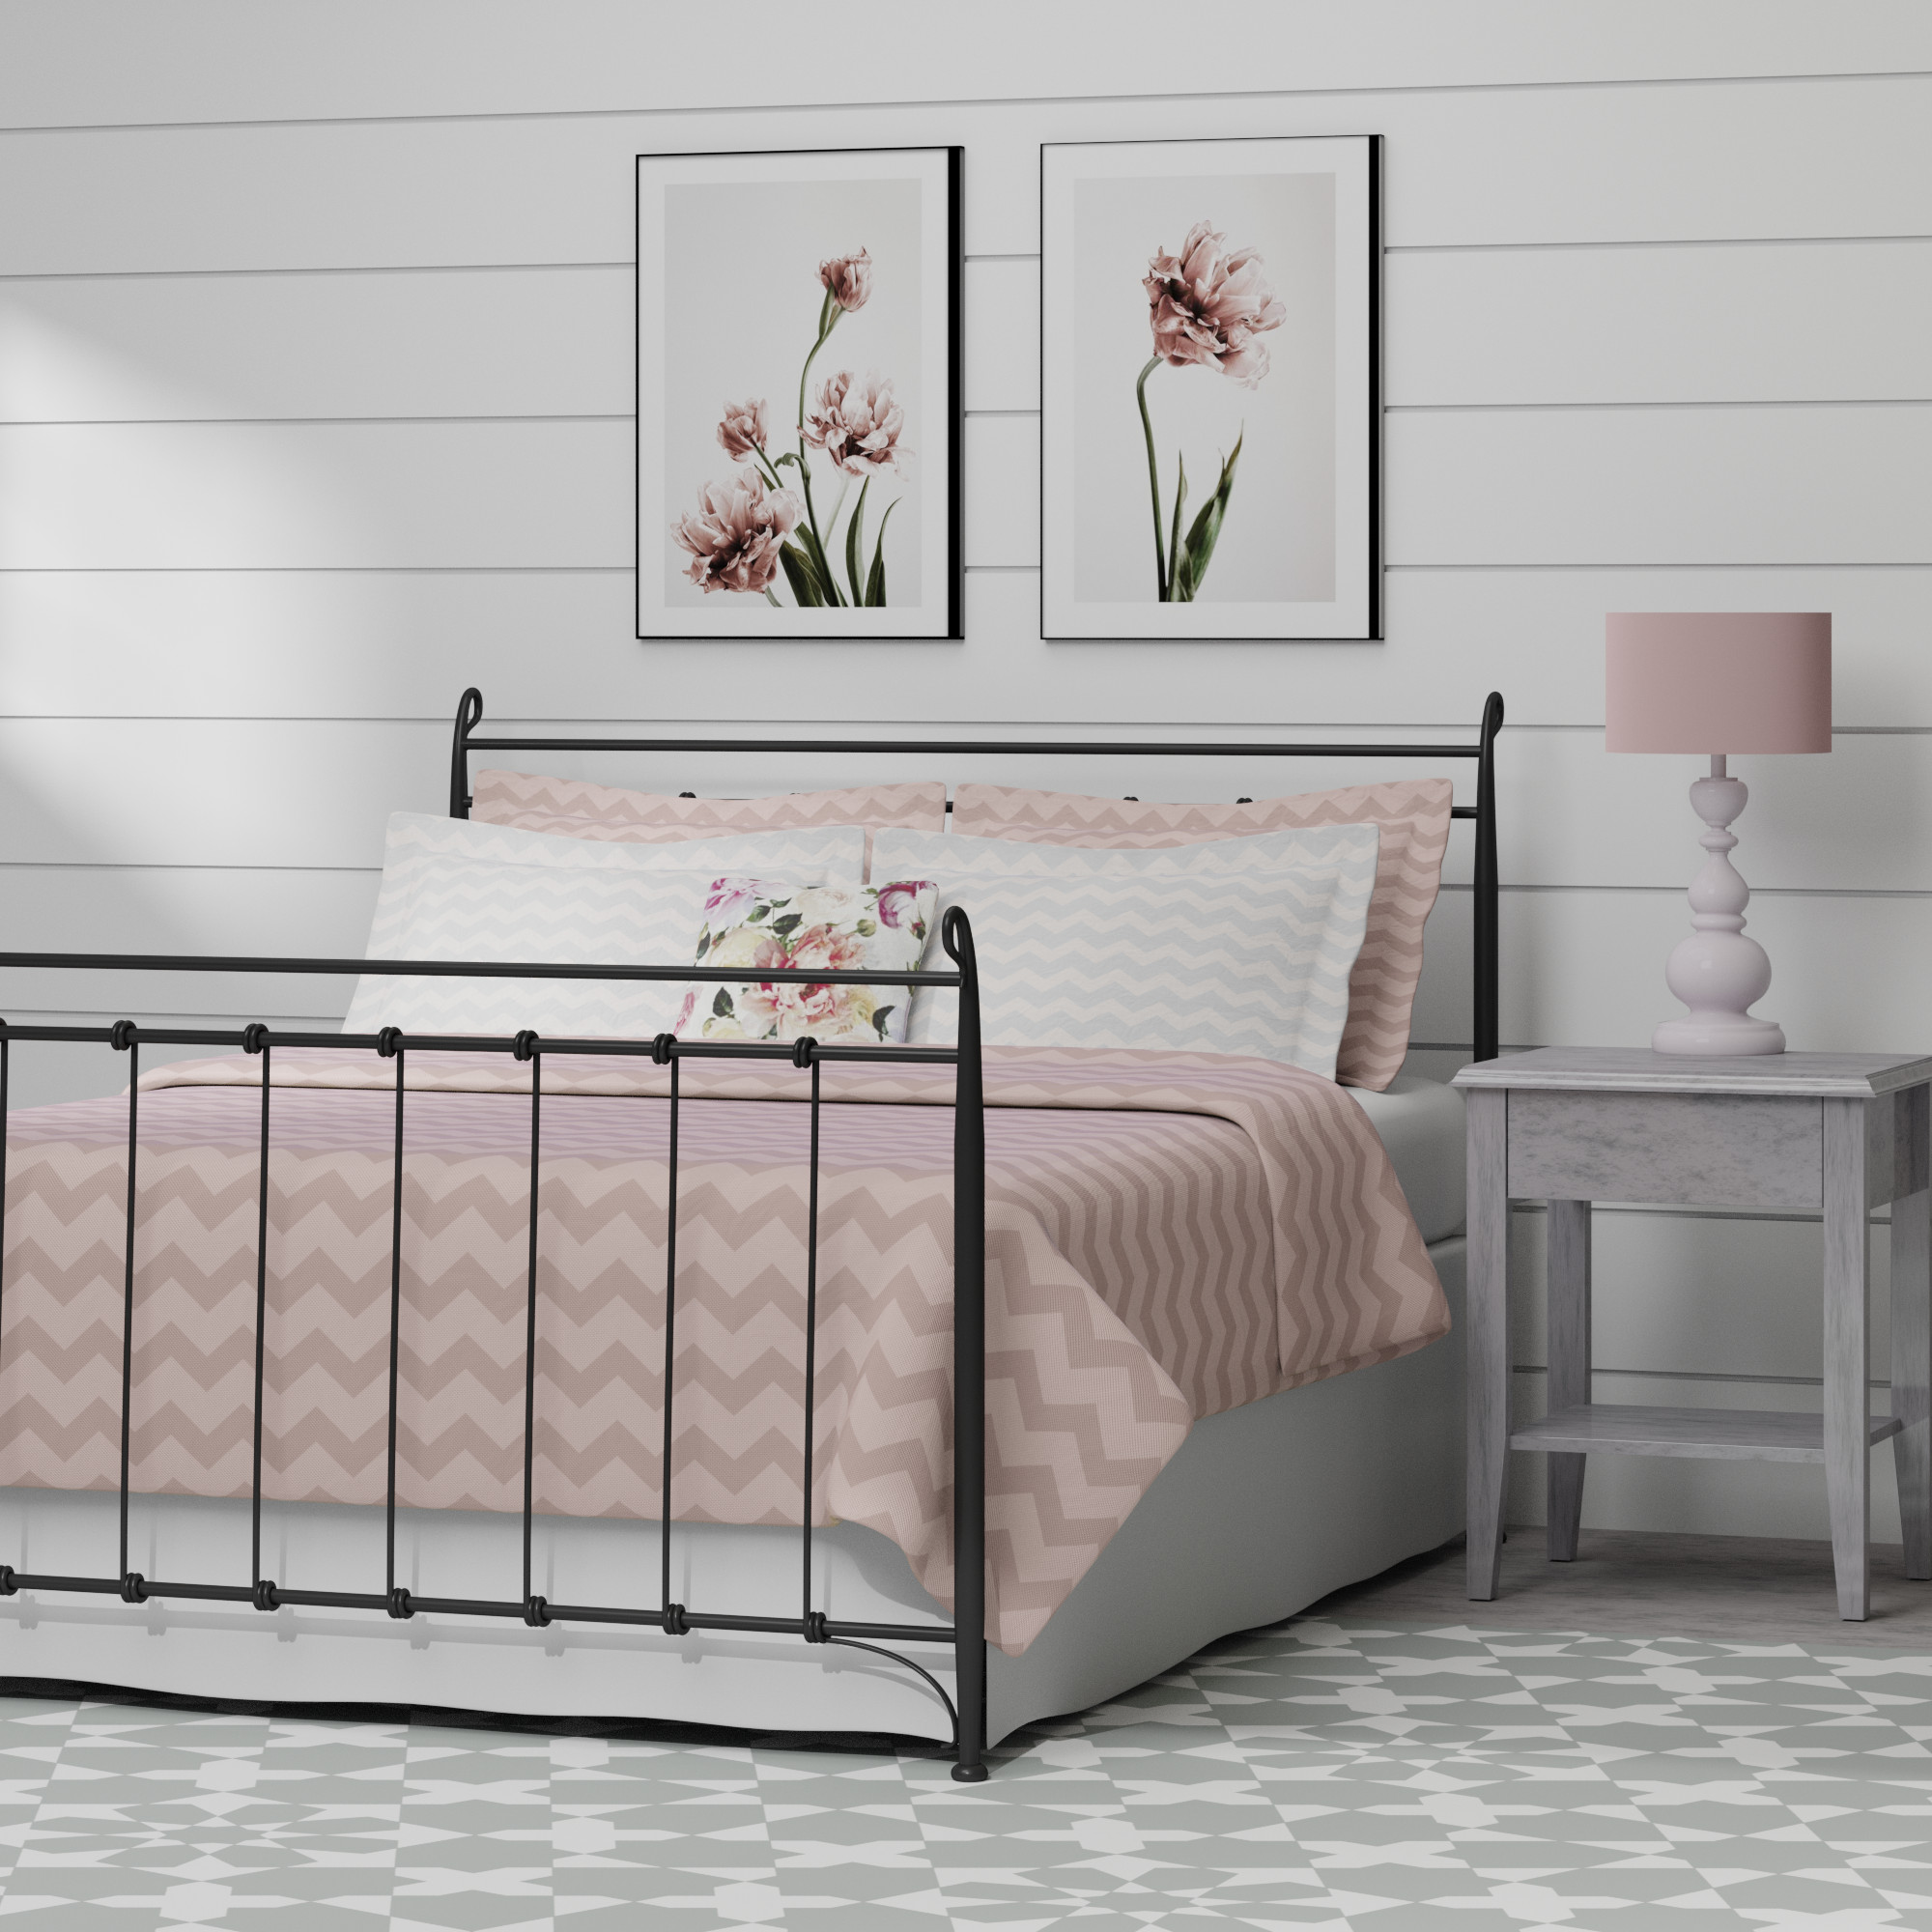 Tiffany iron bed in black with peach linens